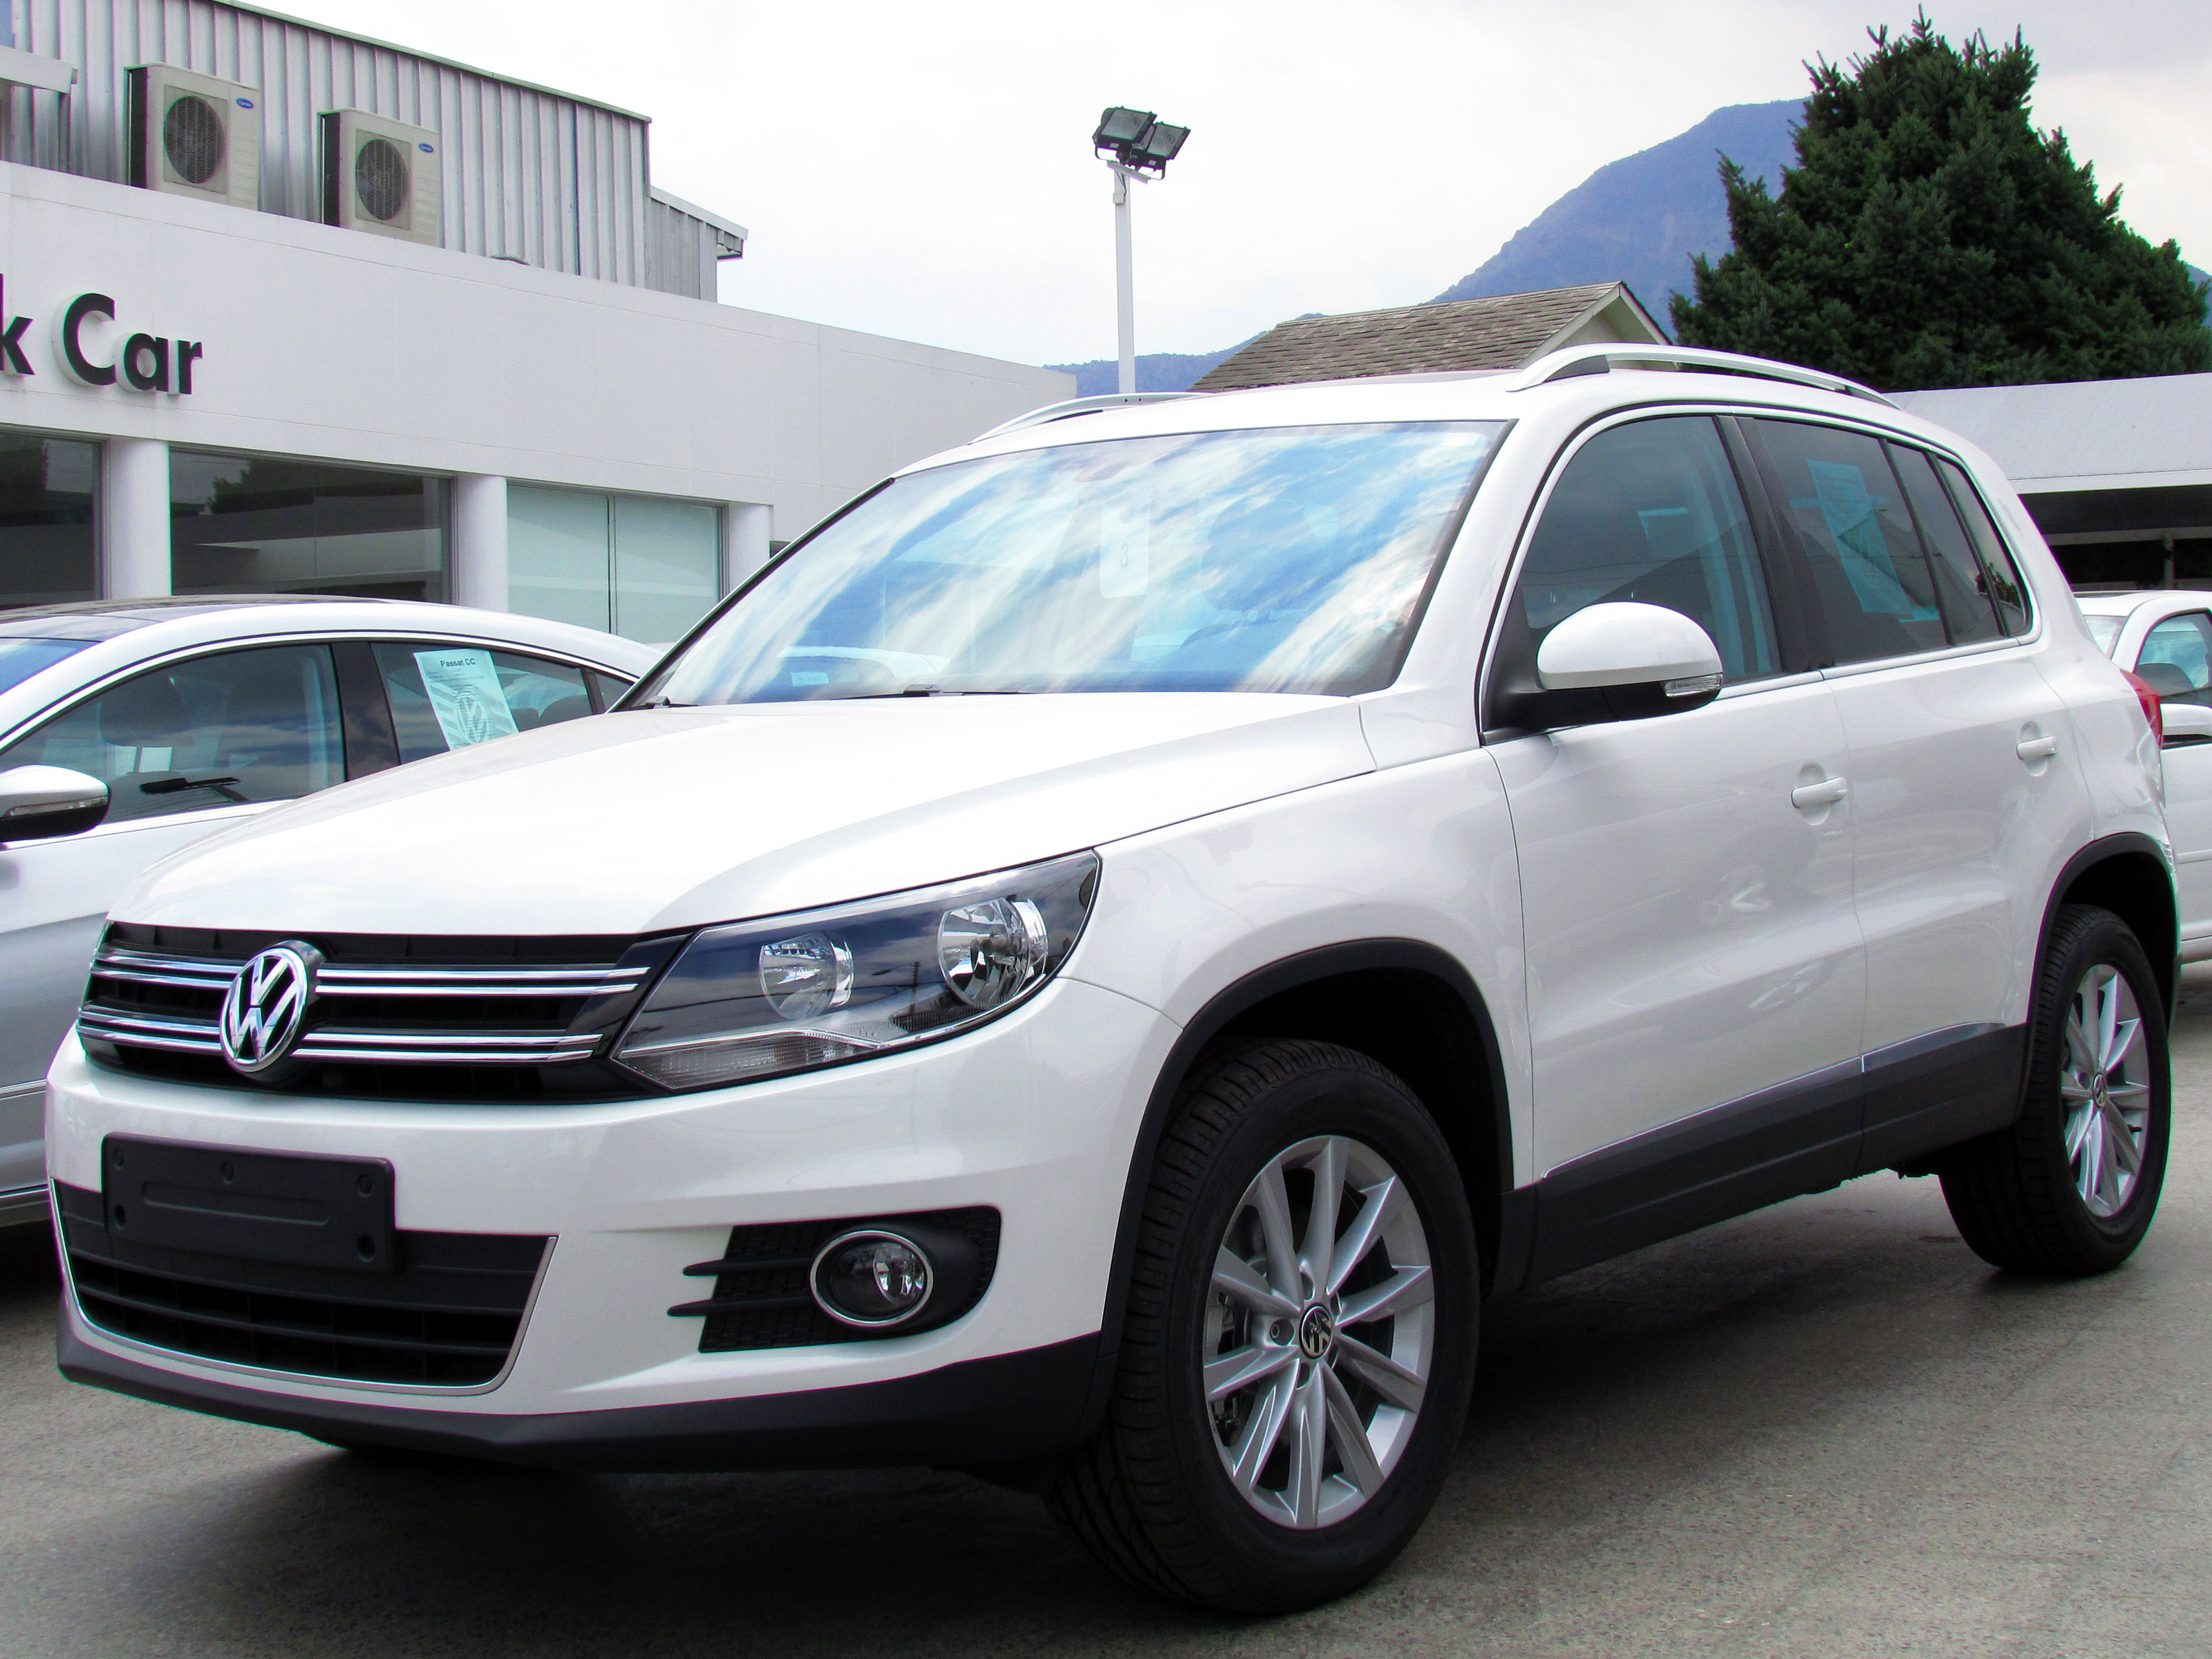 file volkswagen tiguan 2 0 tsi highline 4motion 2012 16717188683 jpg wikimedia commons. Black Bedroom Furniture Sets. Home Design Ideas